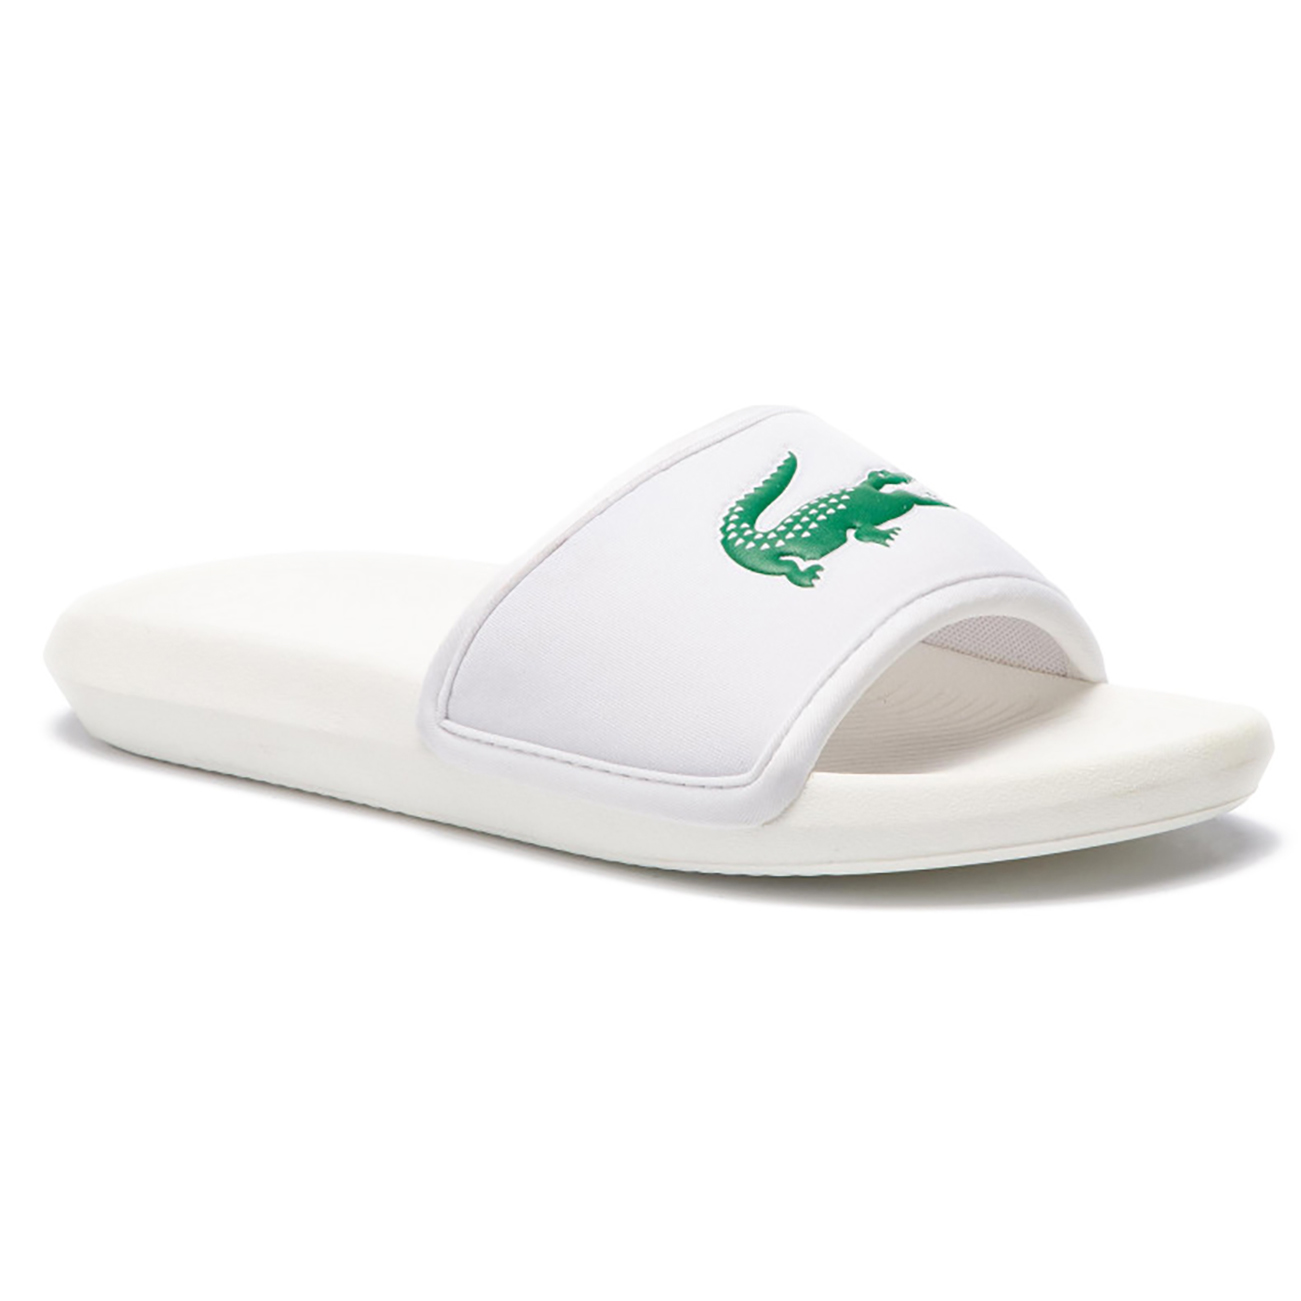 9728e399352e Details about Mens Lacoste Croco 119 1 Cma Rubber Slides Open Toe  Lightweight Sandals UK 6-12